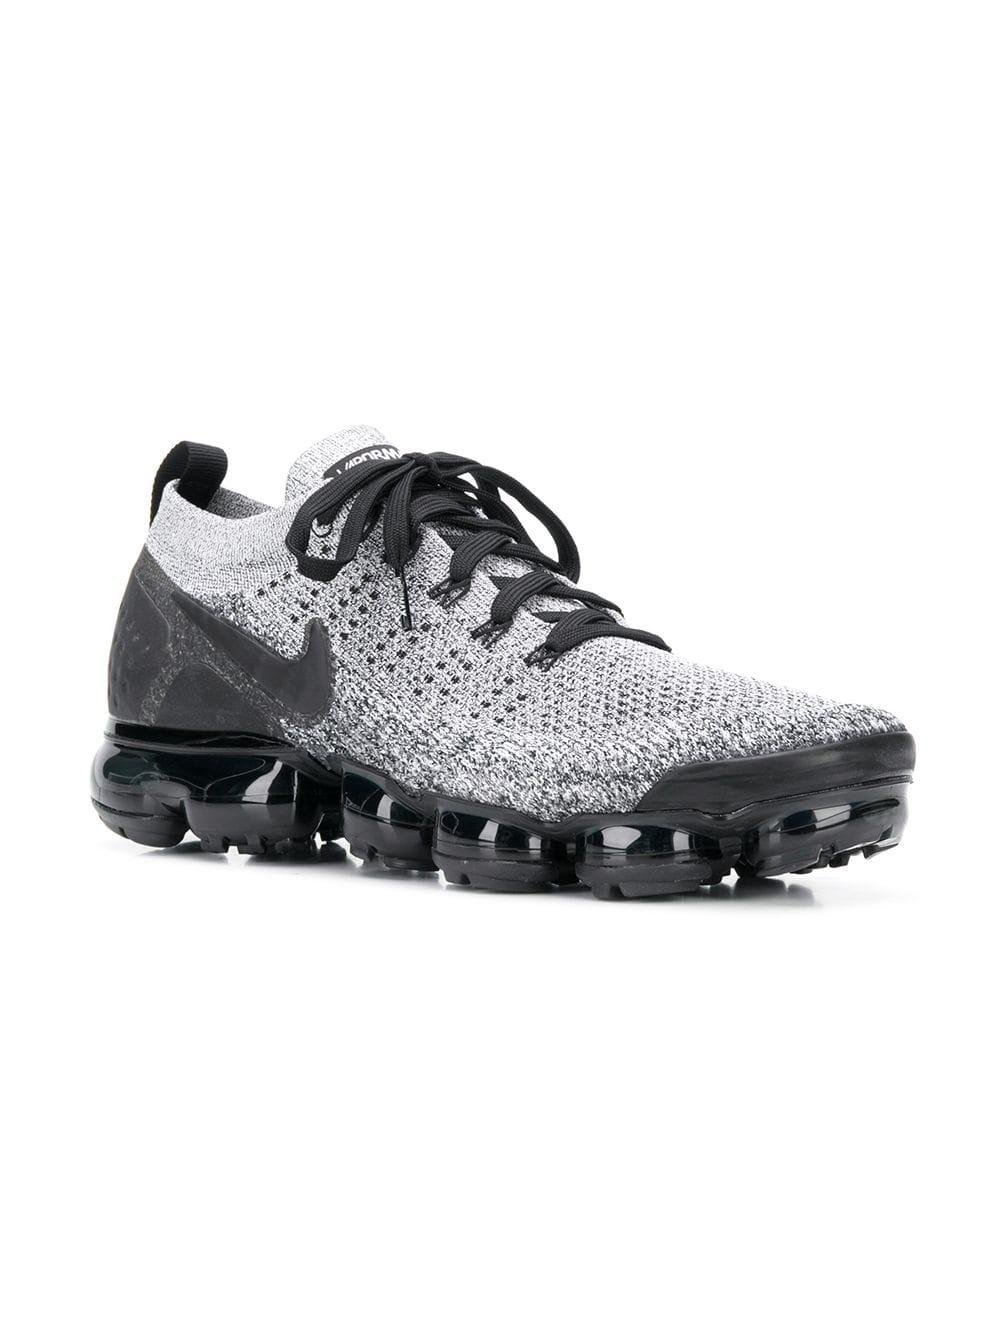 cheap for discount 3e6de b8b35 Nike Air Vapormax Flyknit 2 Sneakers in Black for Men - Save